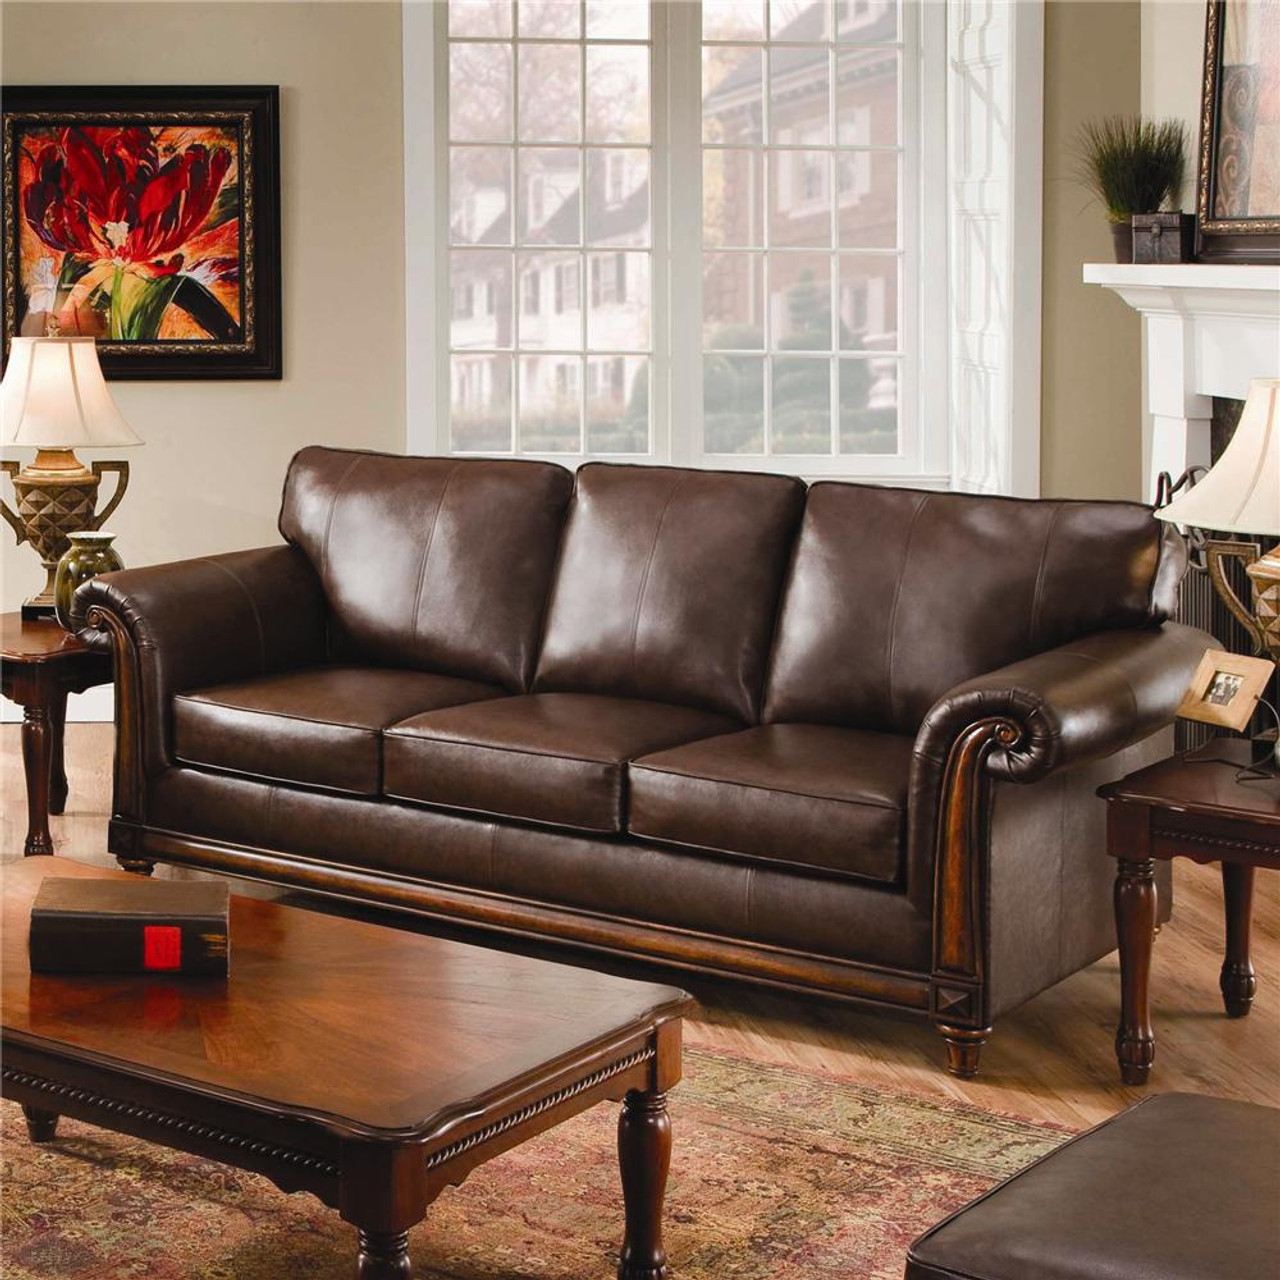 Furniture Leather Sofa Beds San Diego Bed Outlet Bedroom